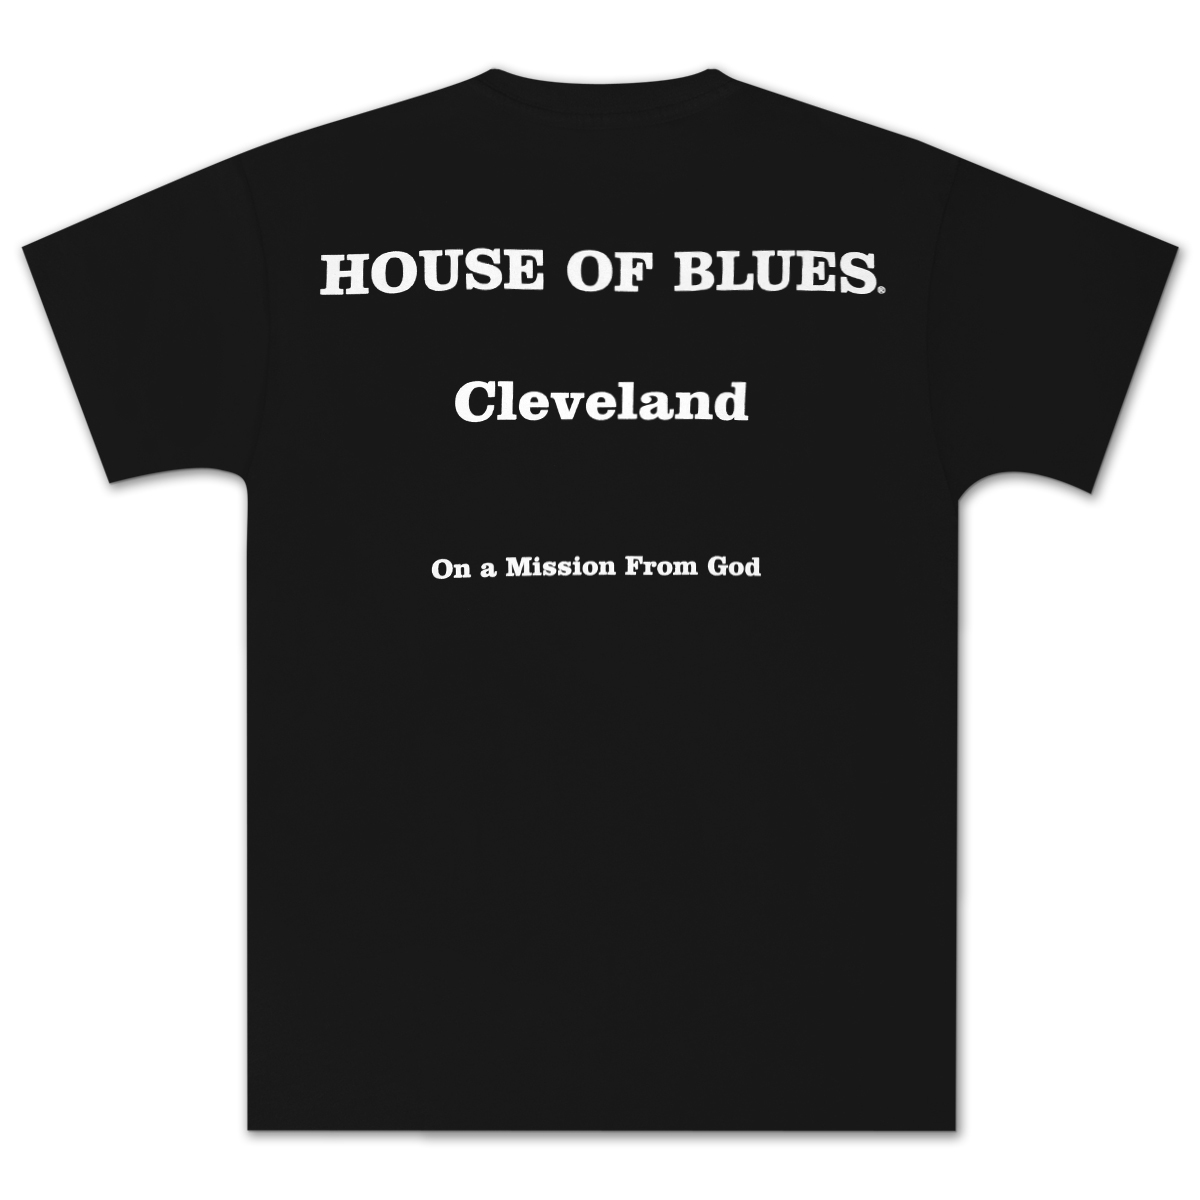 House of Blues Black J&E T-Shirt - Cleveland